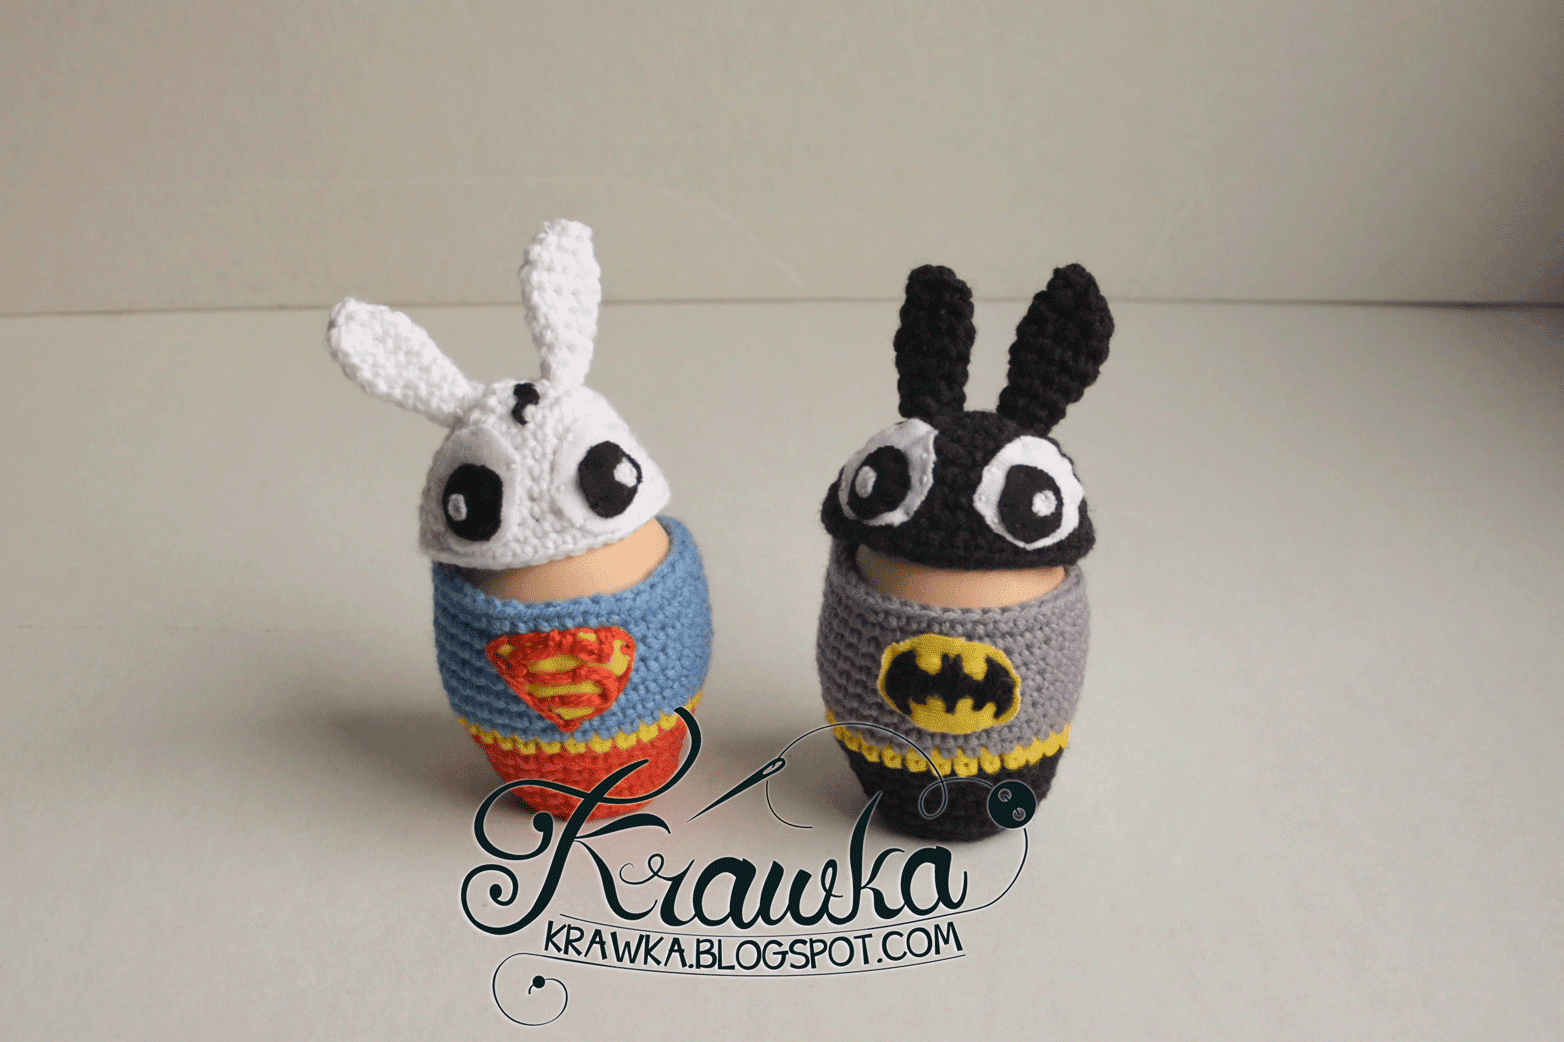 Krawka: Super bunnys Superbunny and Bunnyman inspired by Batman and Superman - Easter egg cozies - Free crochet Pattern to make it yourself